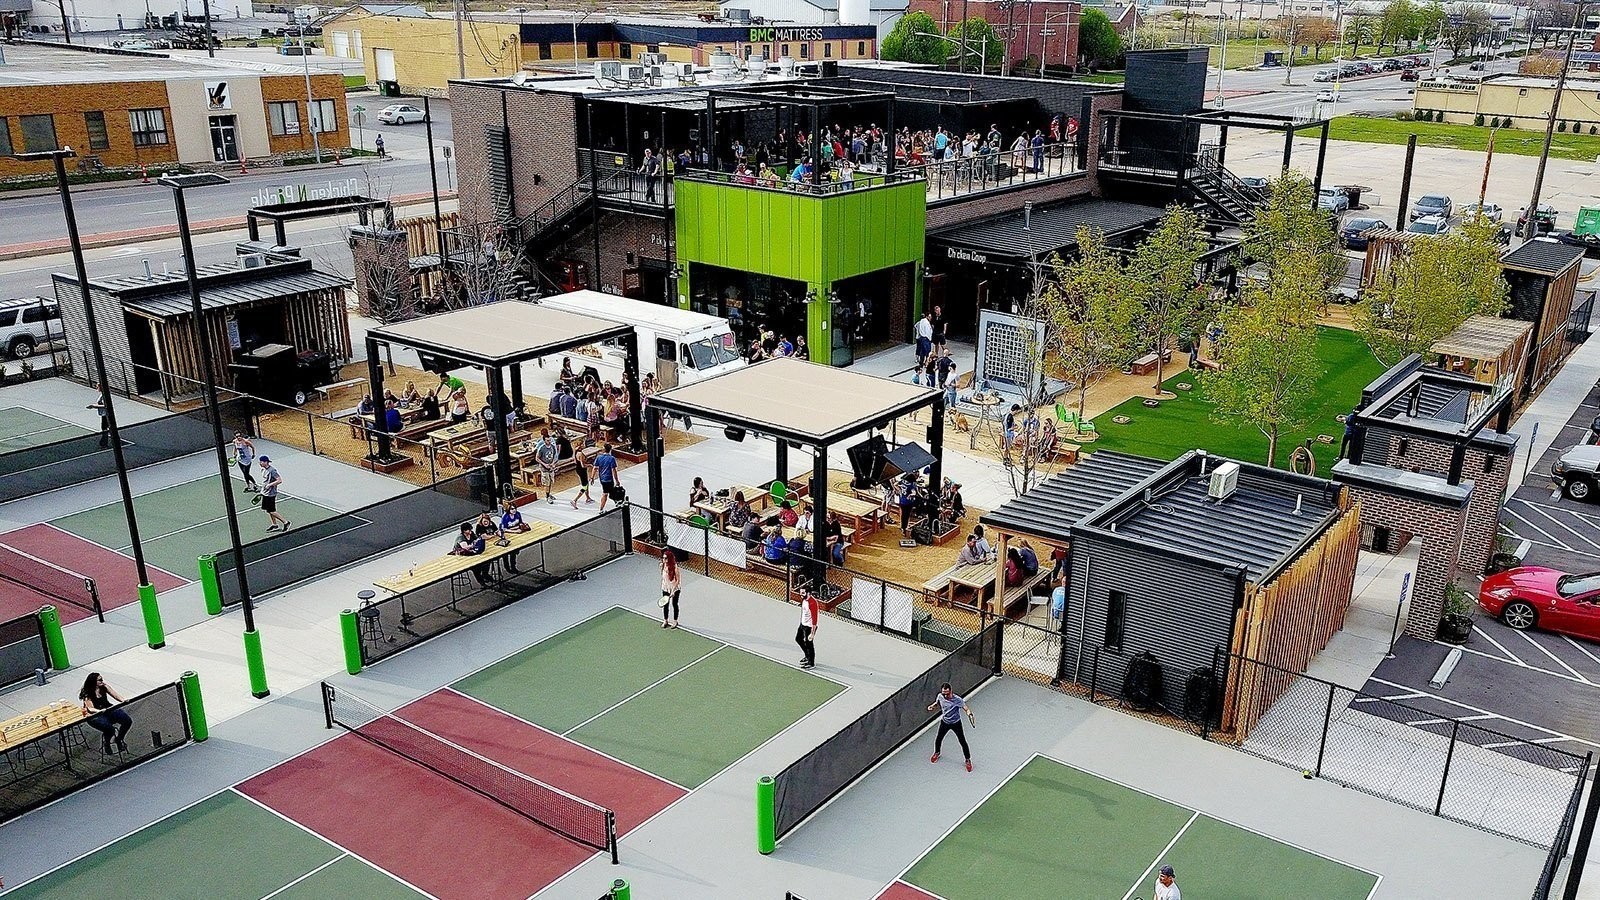 Chicken n pickle named top us rooftop bar for viewing Home and garden show kansas city